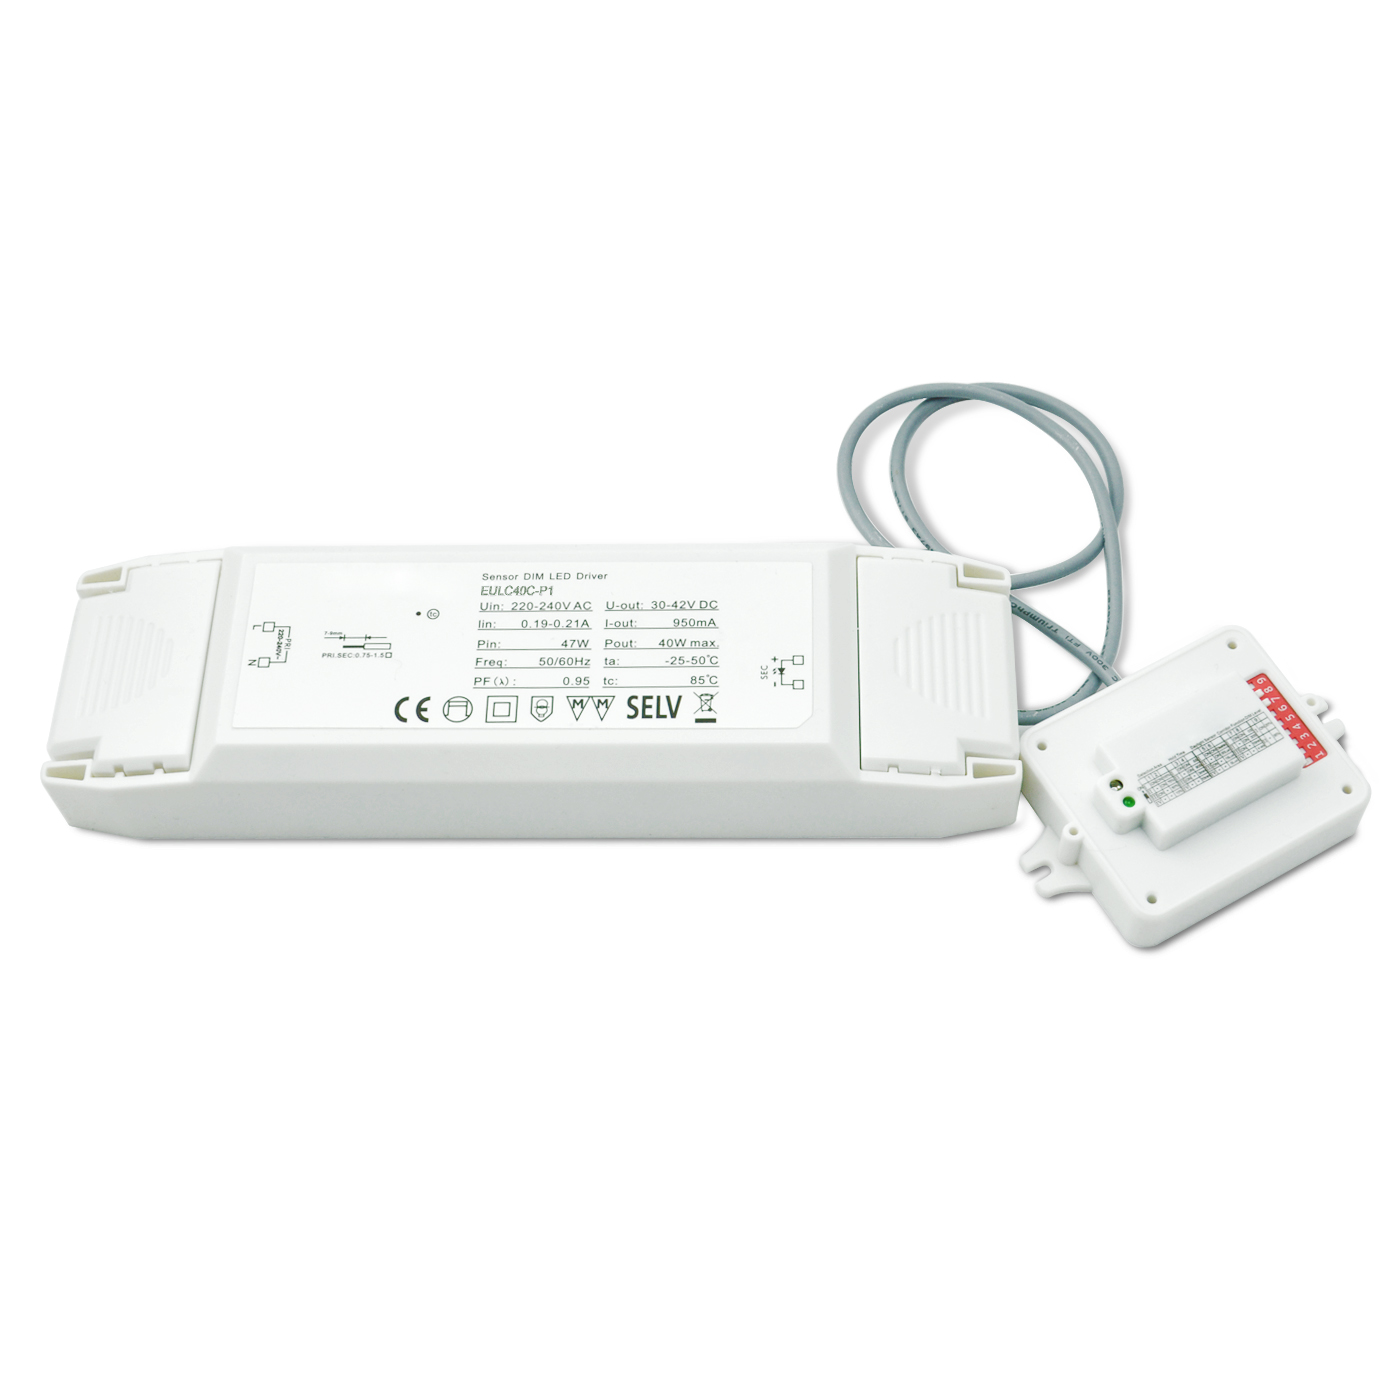 Top Quality Flashing Led Light Controller -